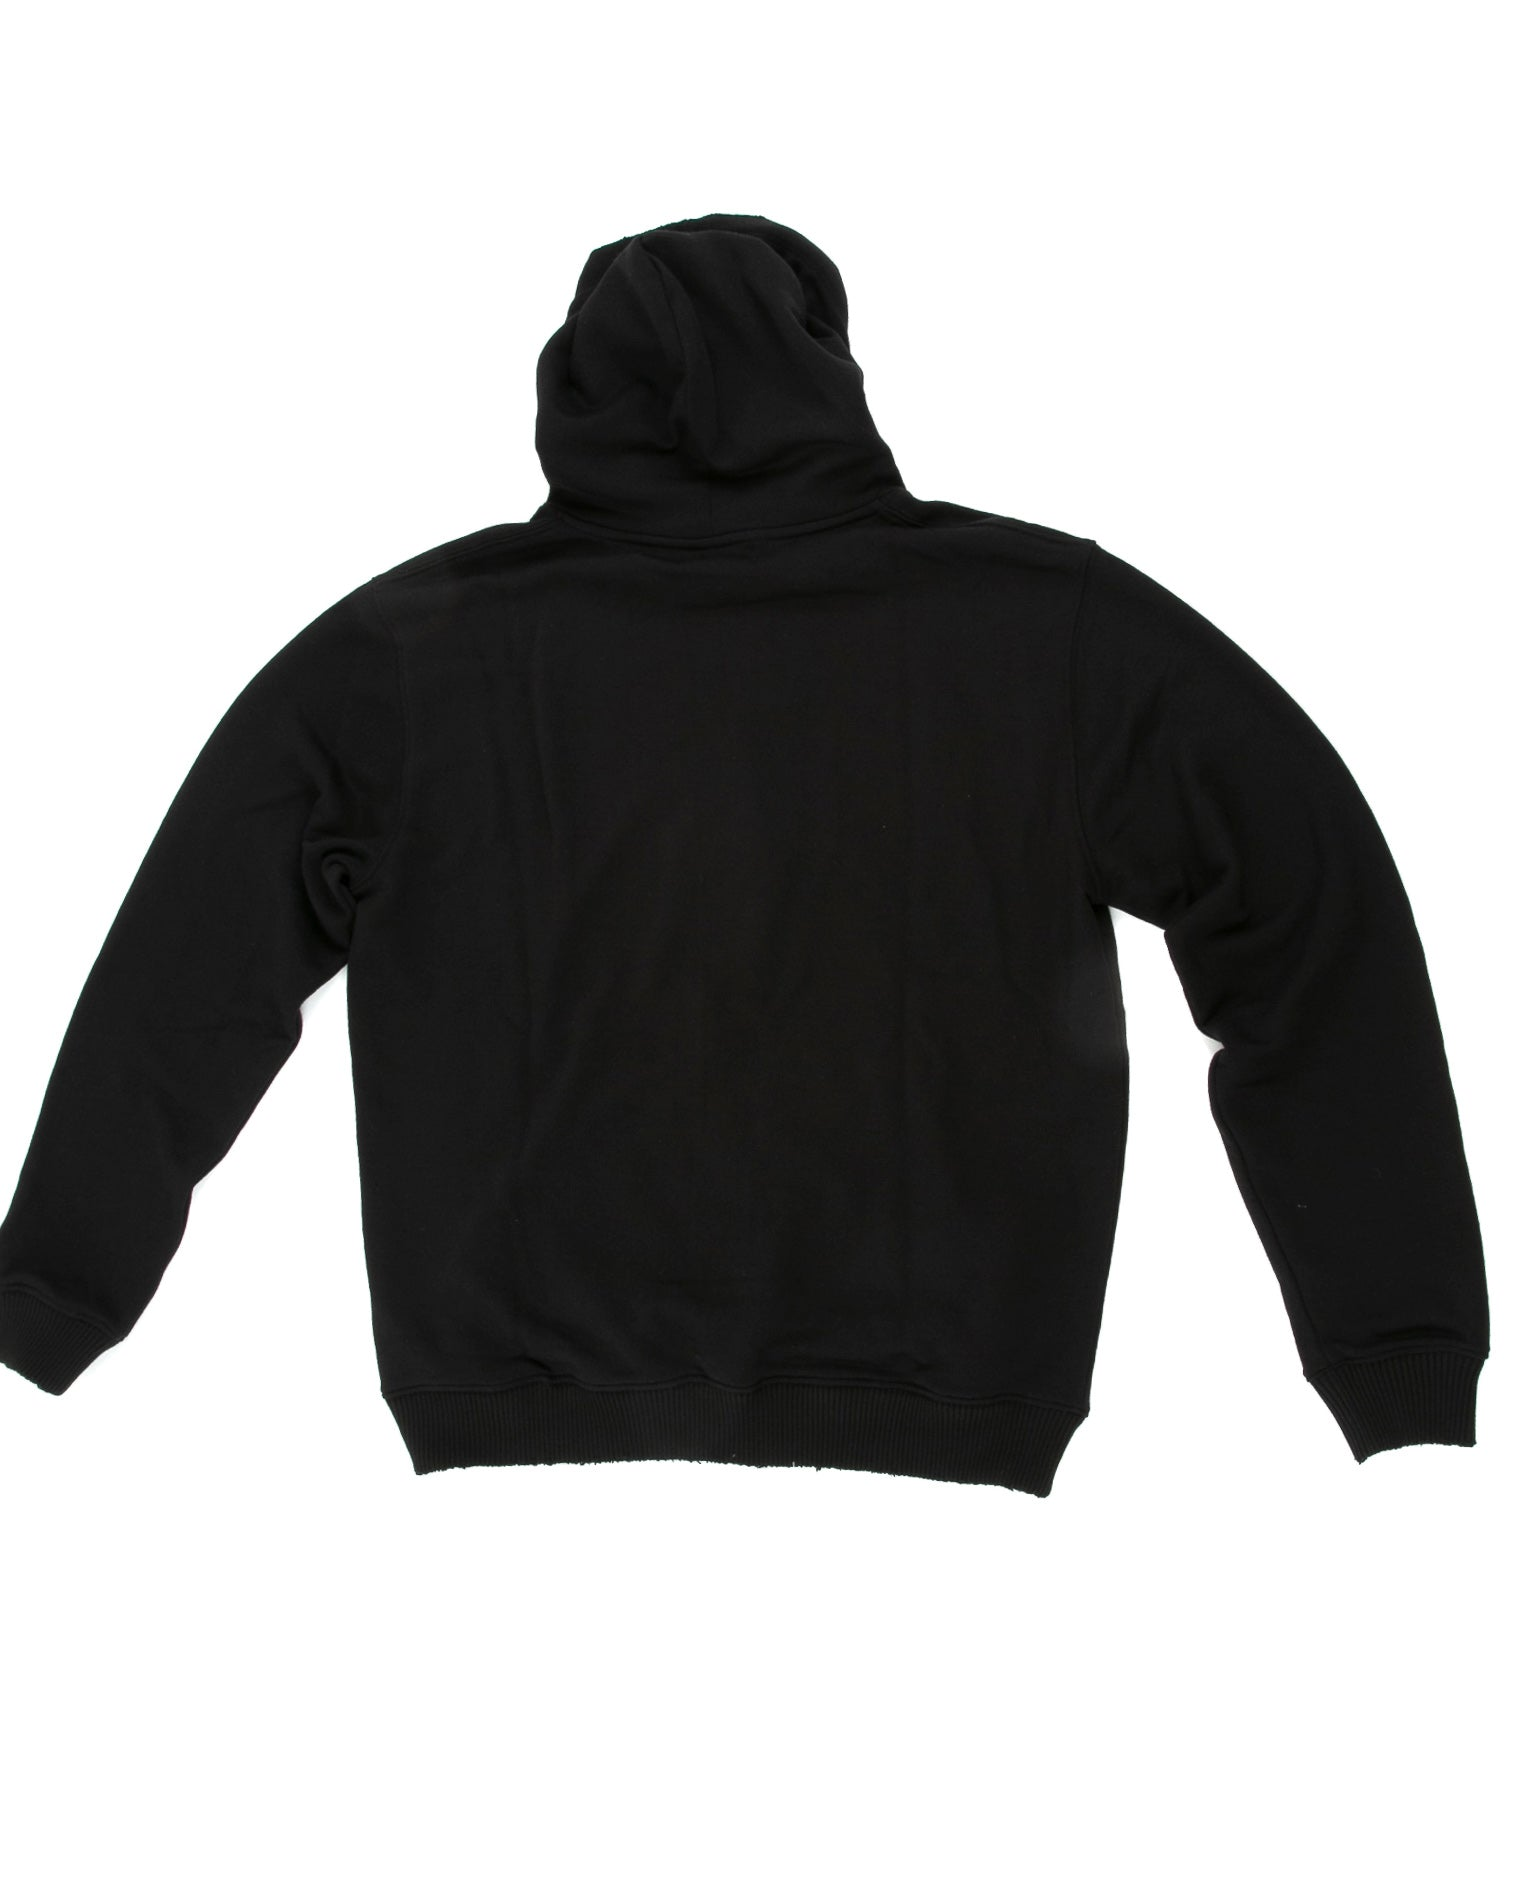 Back of Weighted Hoodie in Black